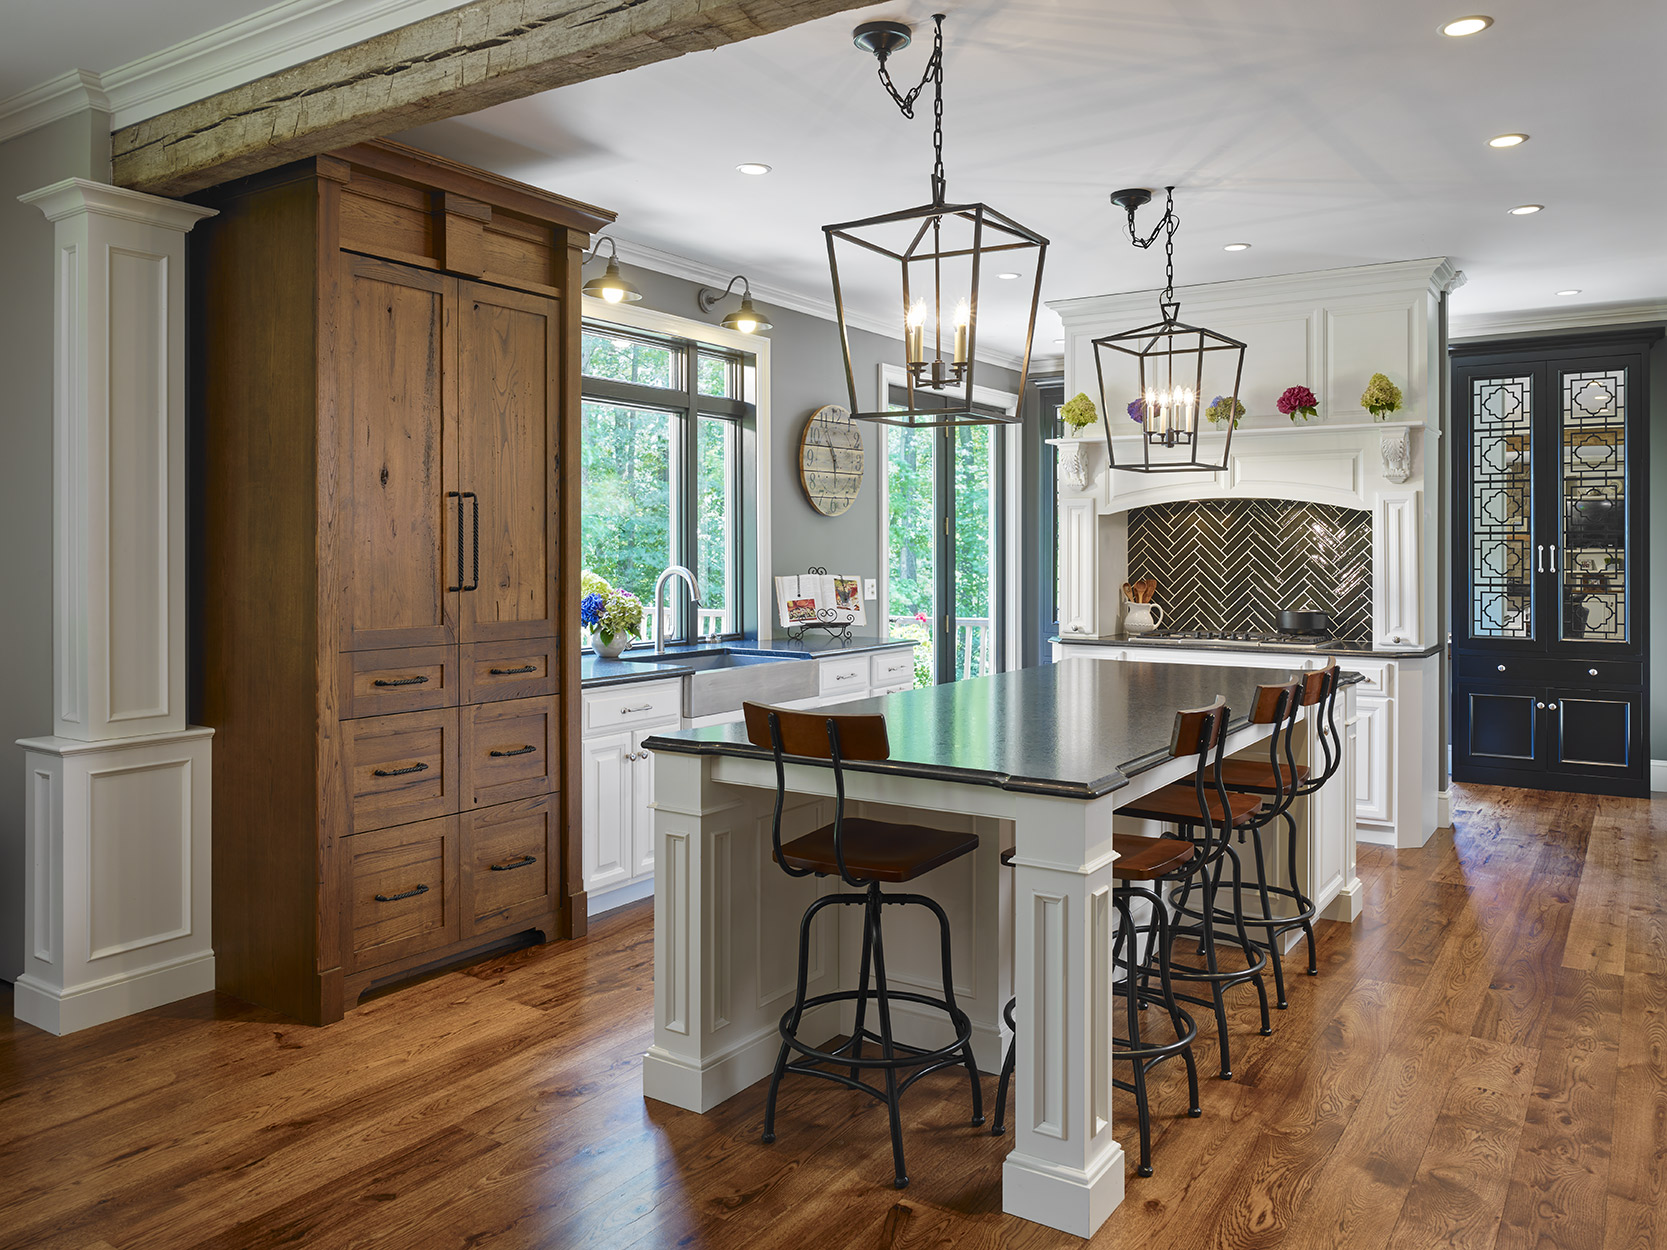 Joe Kitchen is a commercial interior & architectural photographer based in New York and Philadelphia that photographs building design and hotels and resorts.  Joe regularly travels to Washington DC, Baltimore, Boston and the rest of North America for projects.